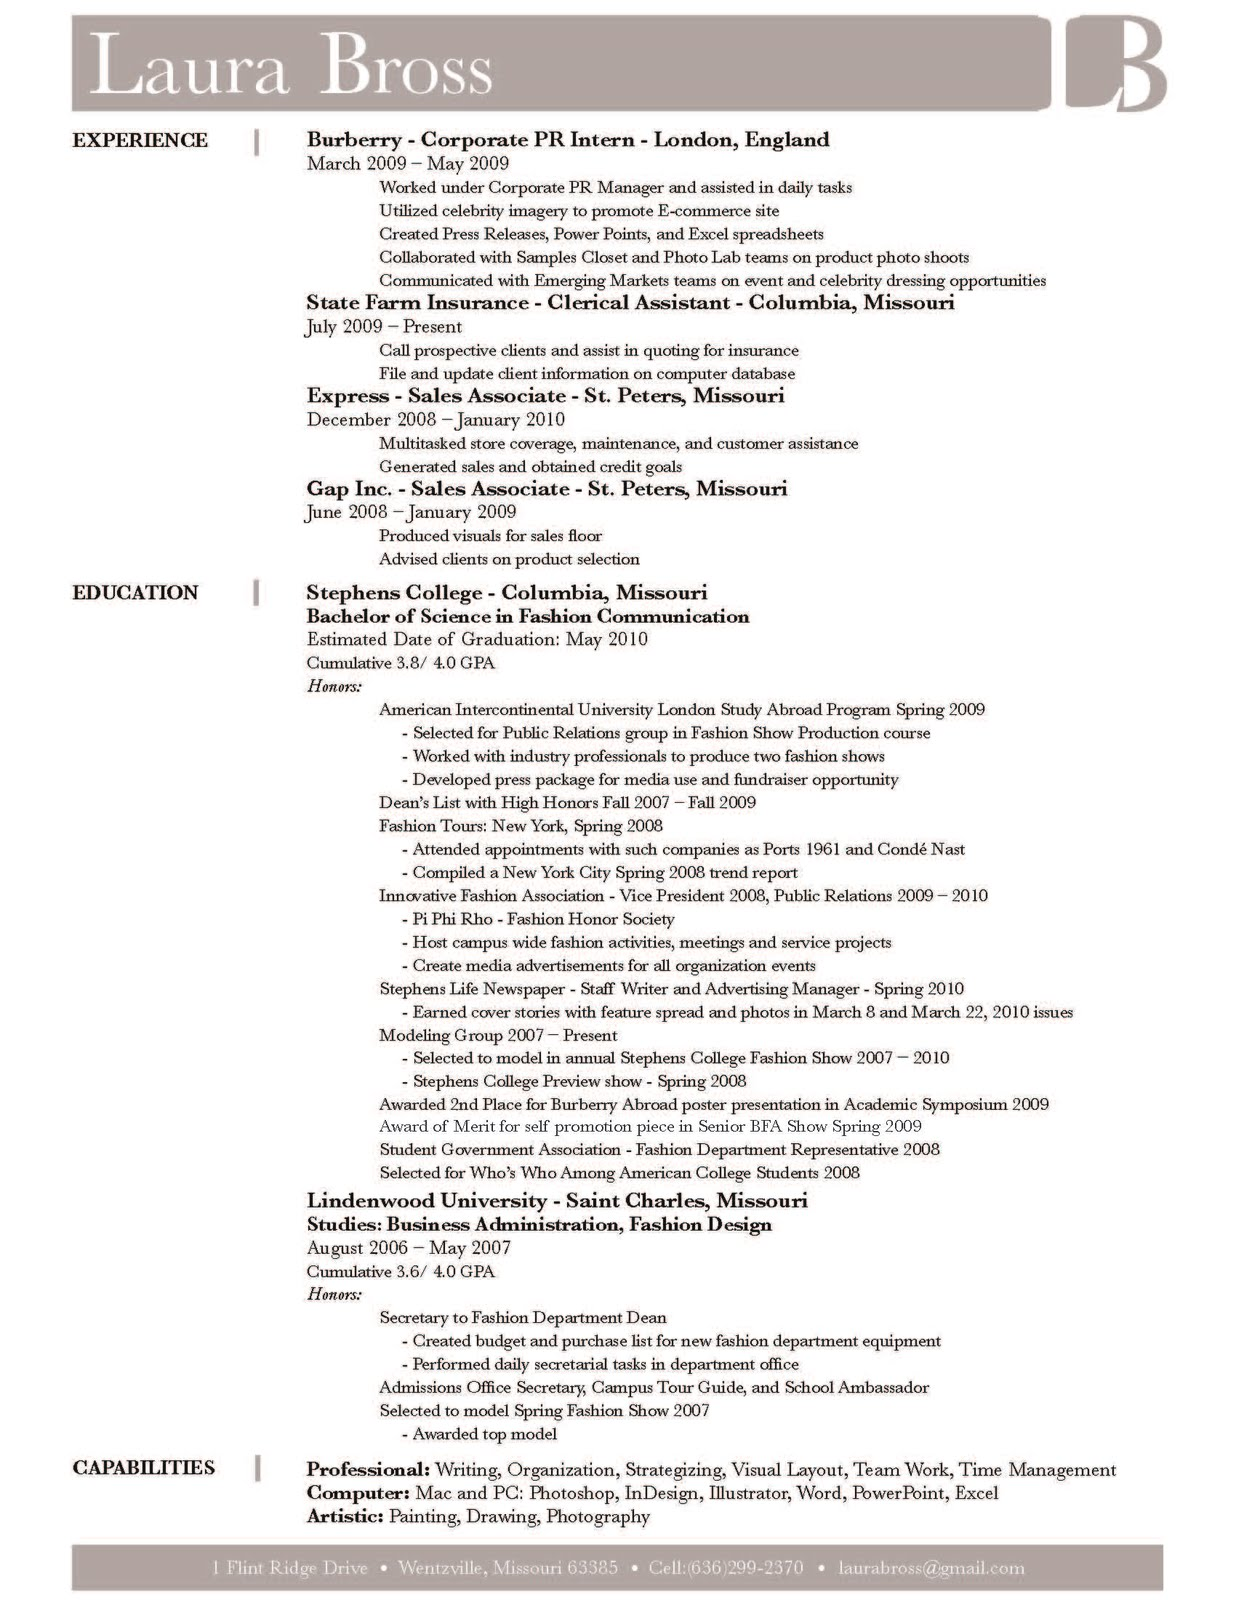 List Of Accomplishments For A Resume Modal Title